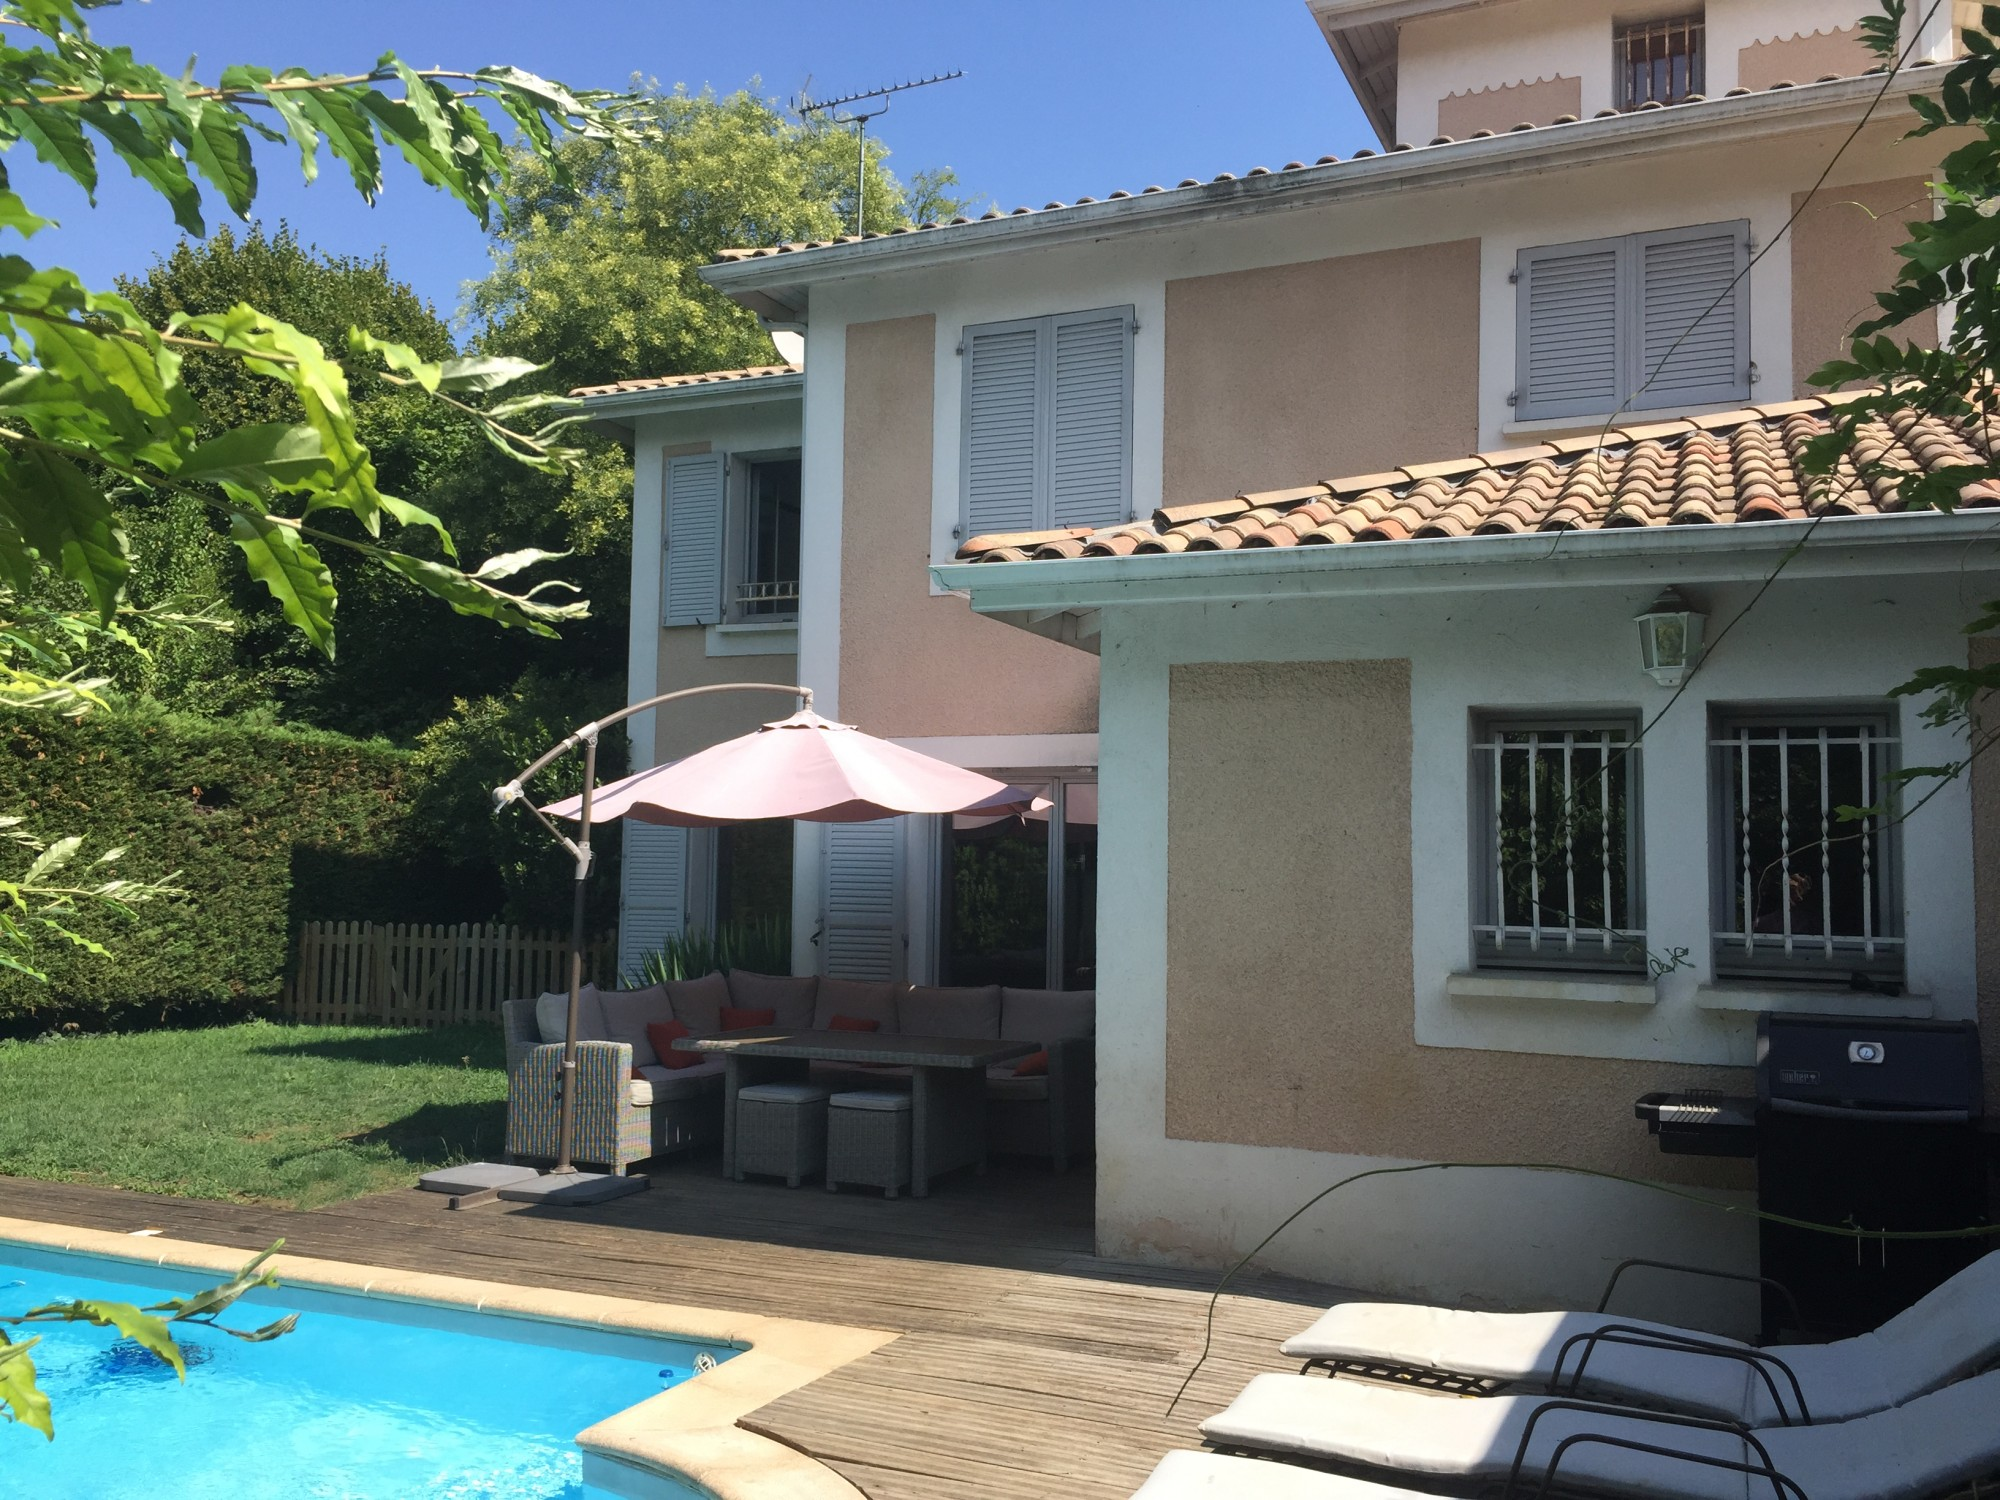 Vente maison t7 f7 ecully avec piscine immobilier ecully for Acheter maison ecully